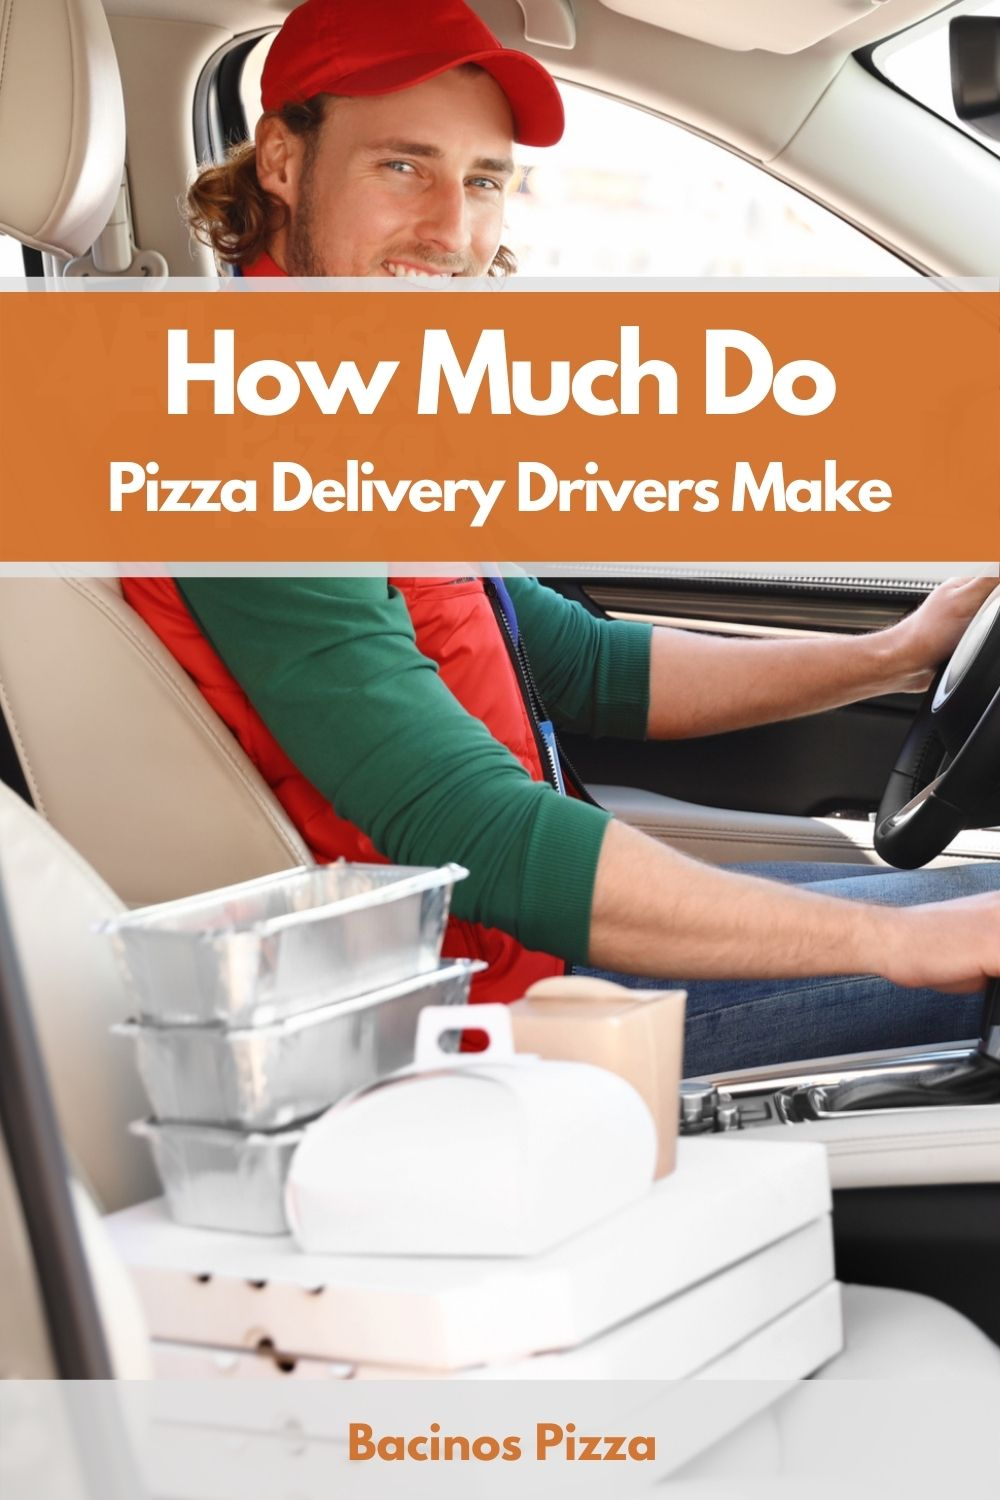 How Much Do Pizza Delivery Drivers Make pin 2